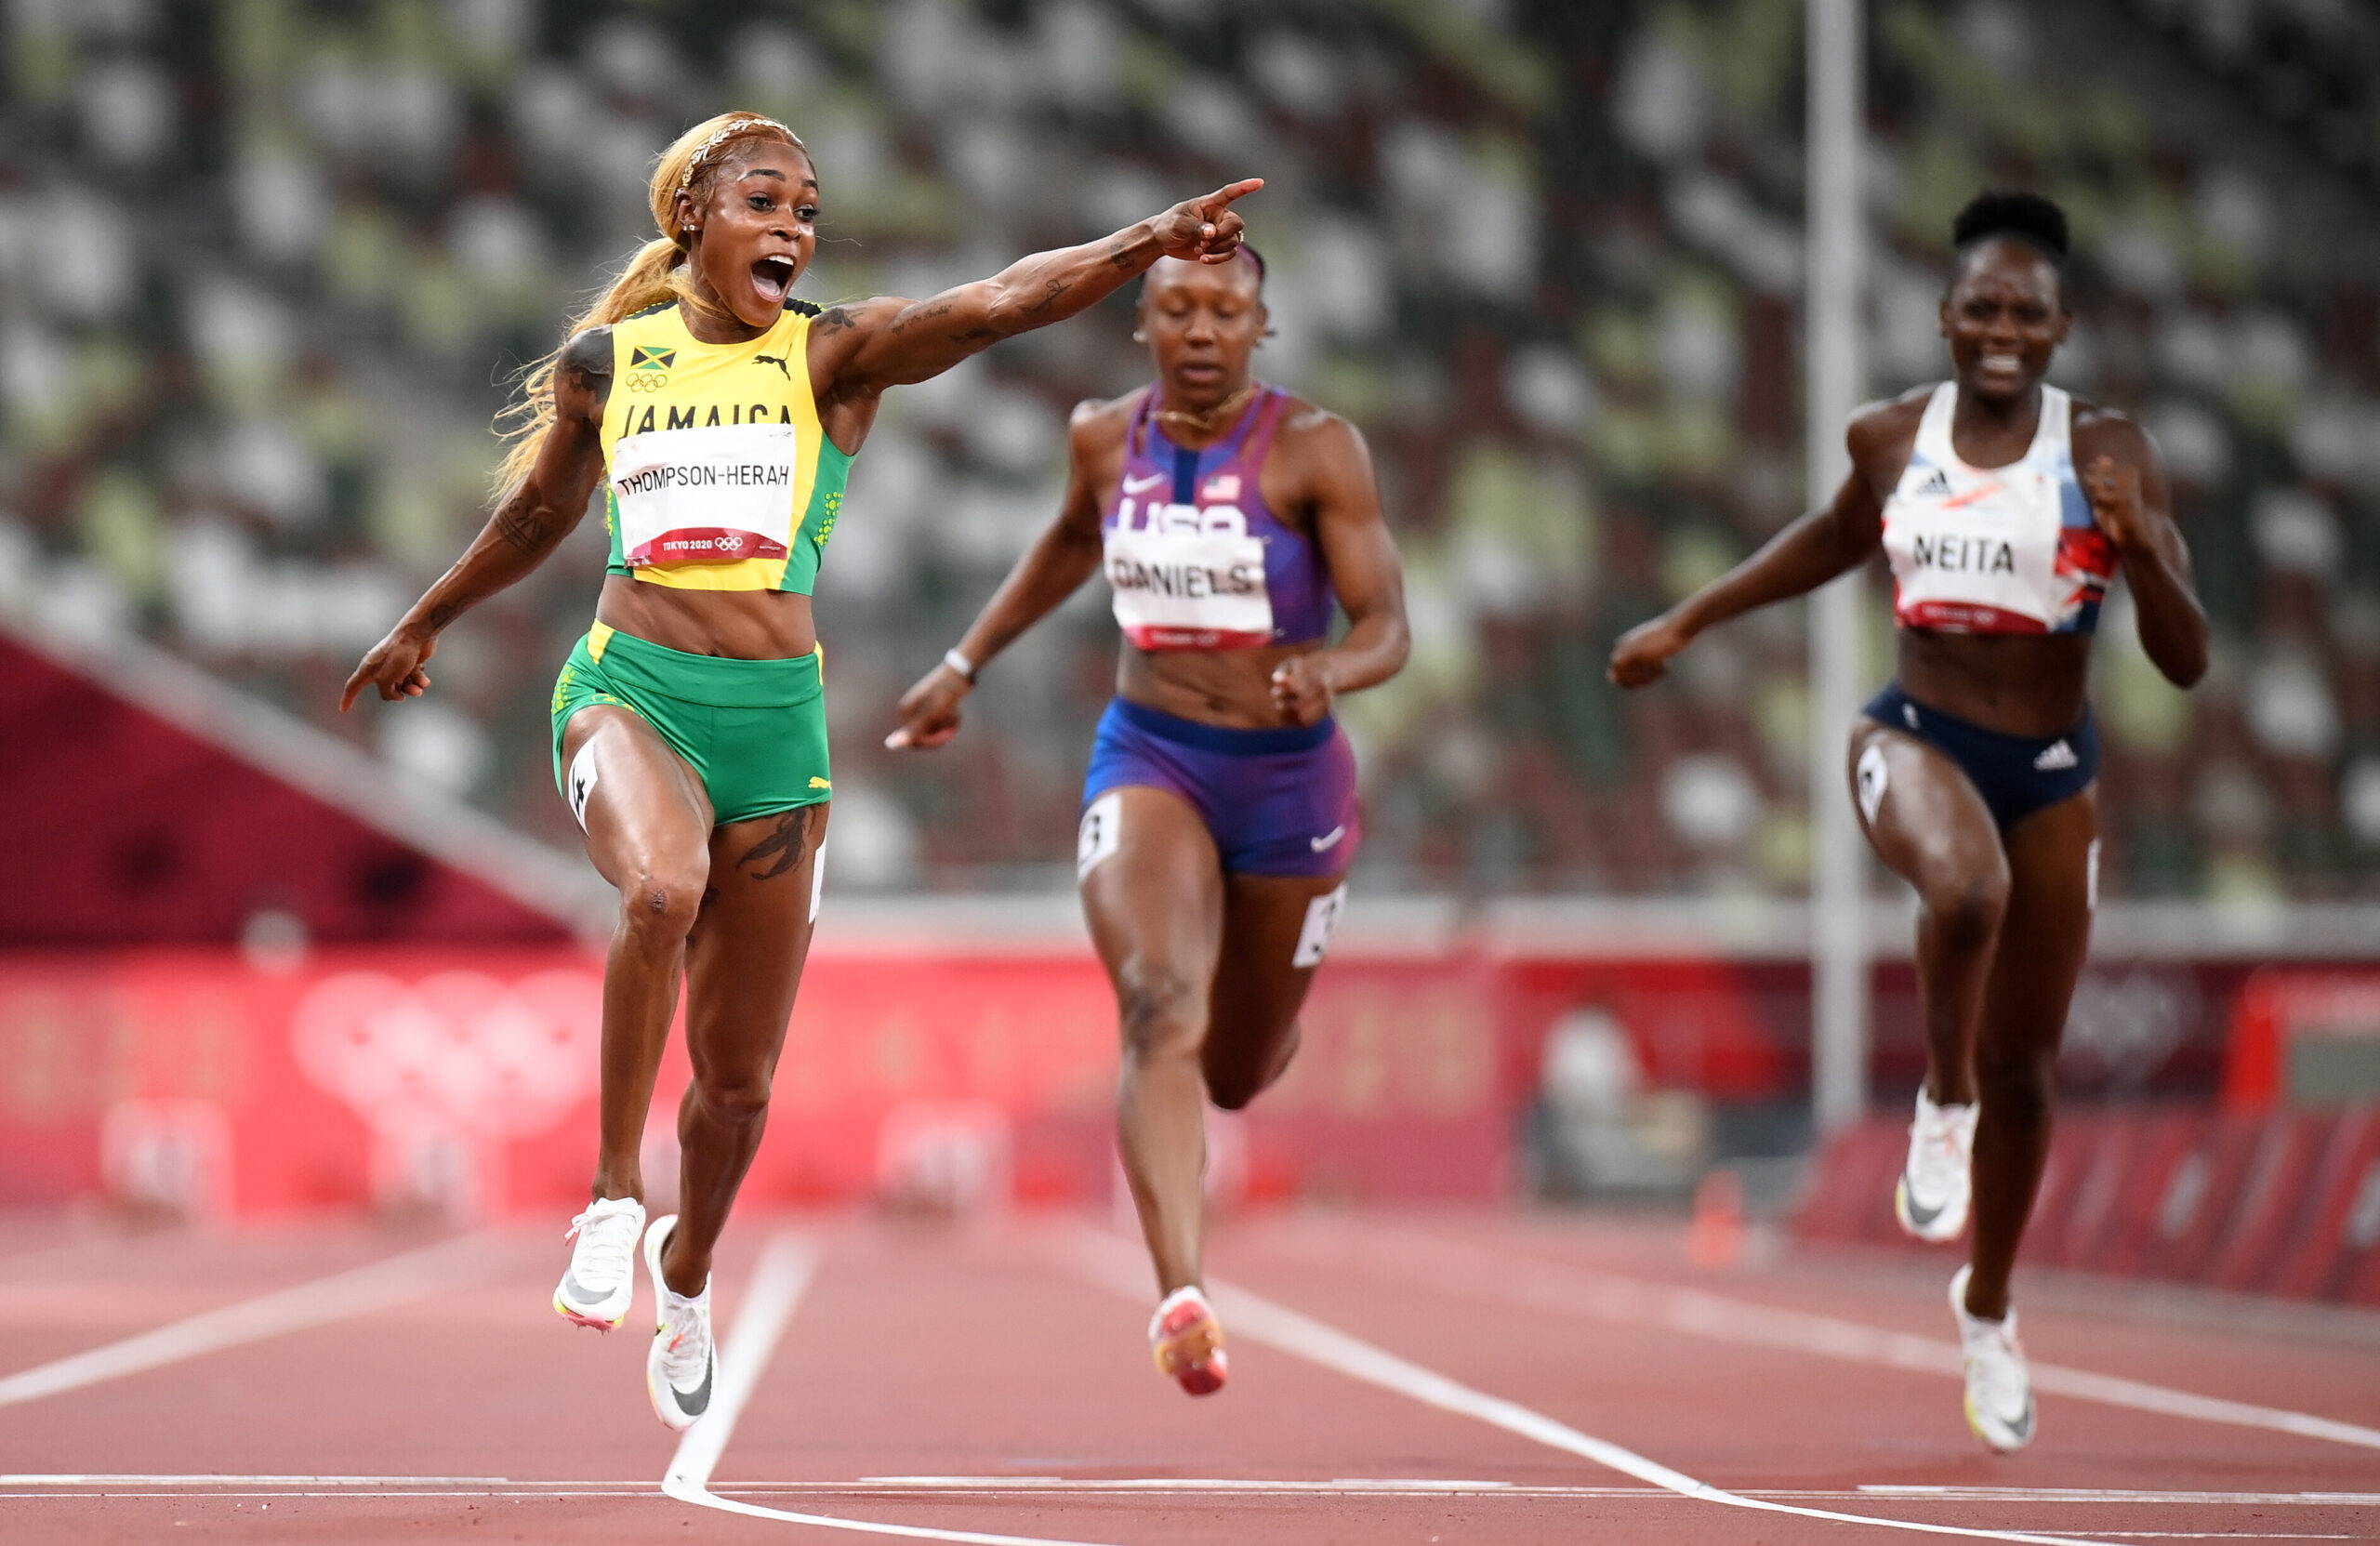 <i>Matthias Hangst/Getty Images AsiaPac/Getty Images</i><br/>Elaine Thompson-Herah celebrates as she wins 100m gold at the Tokyo Olympics.